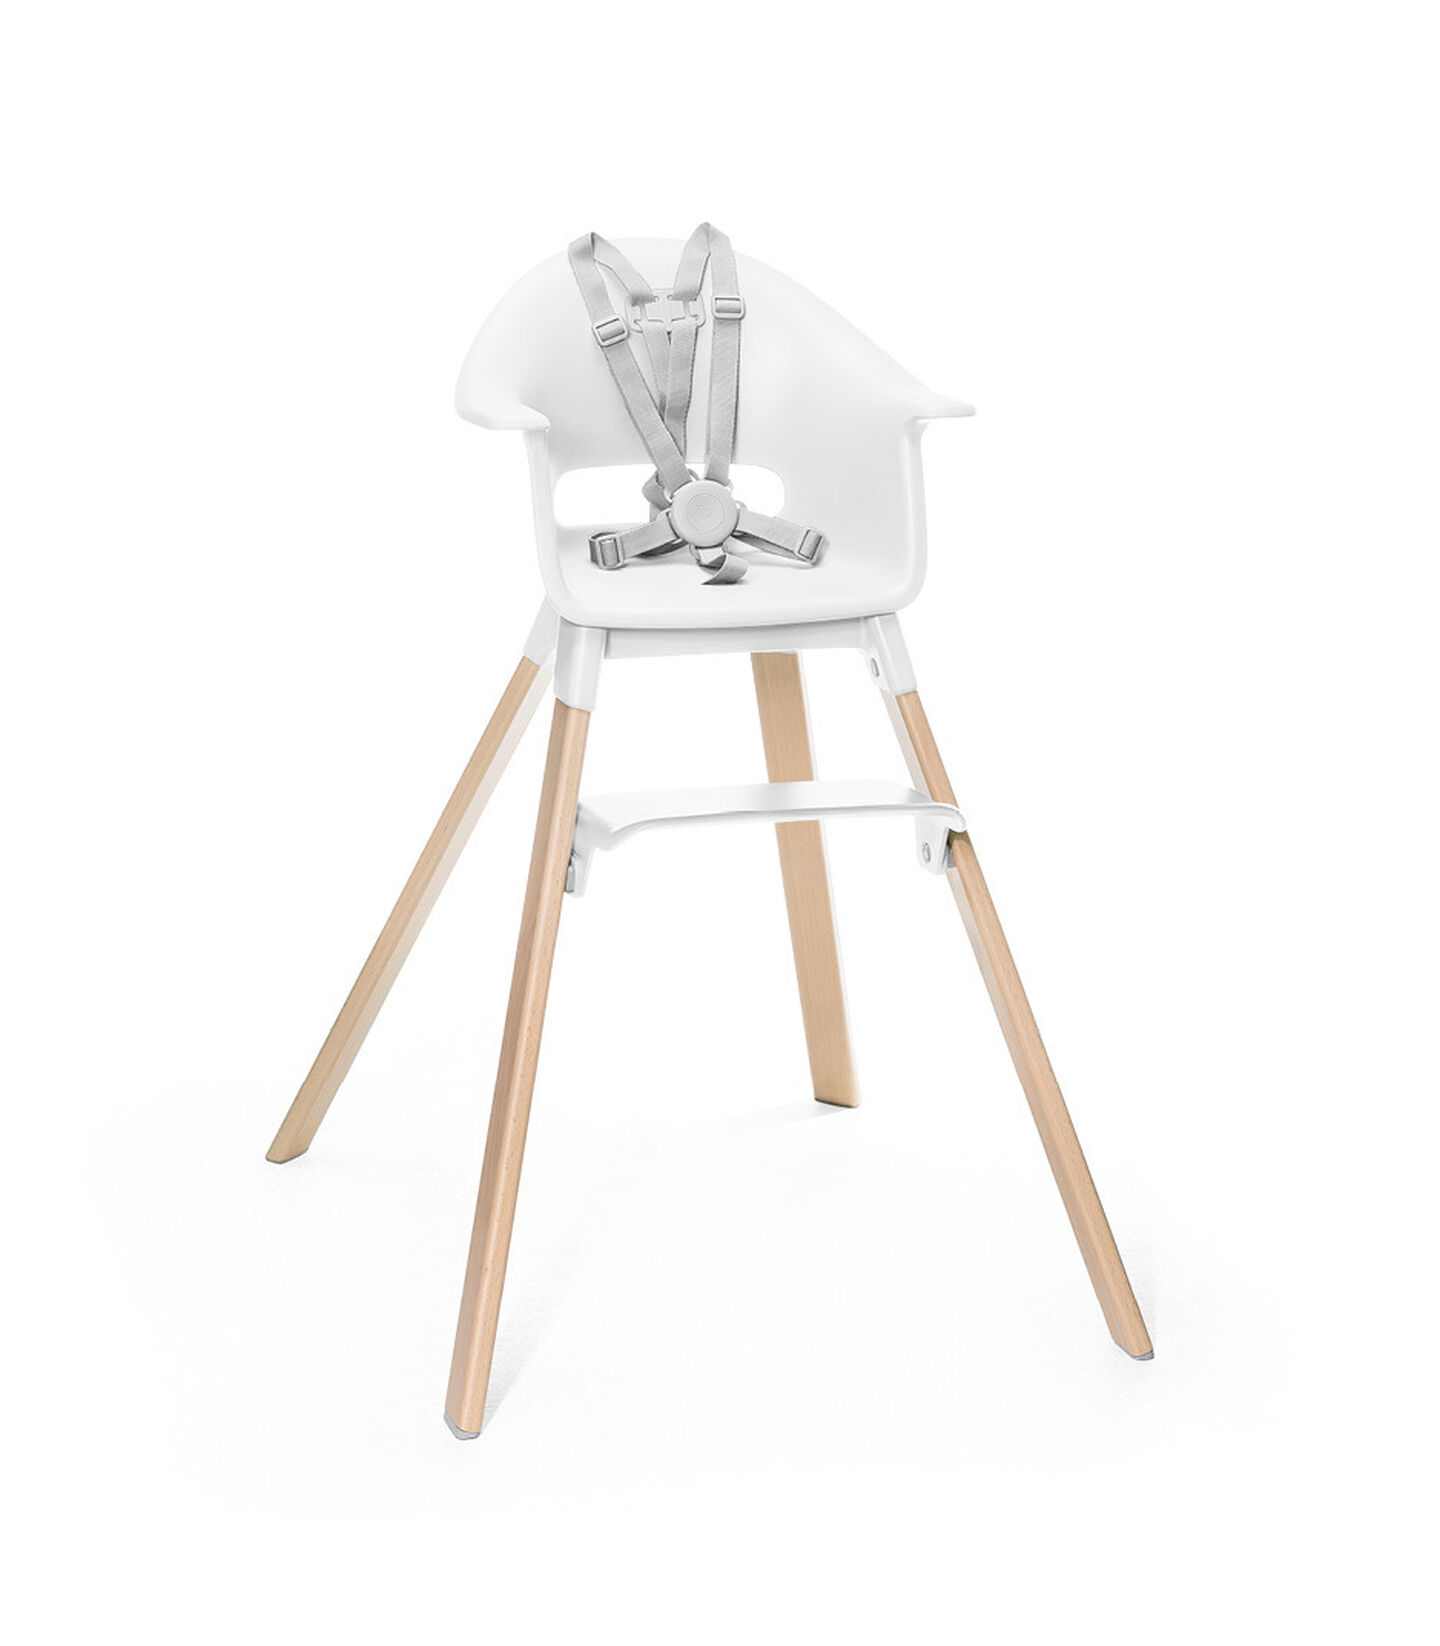 Stokke® Clikk™ High Chair. Natural Beech wood and White plastic parts. Stokke® Harness attached. Footrest low.